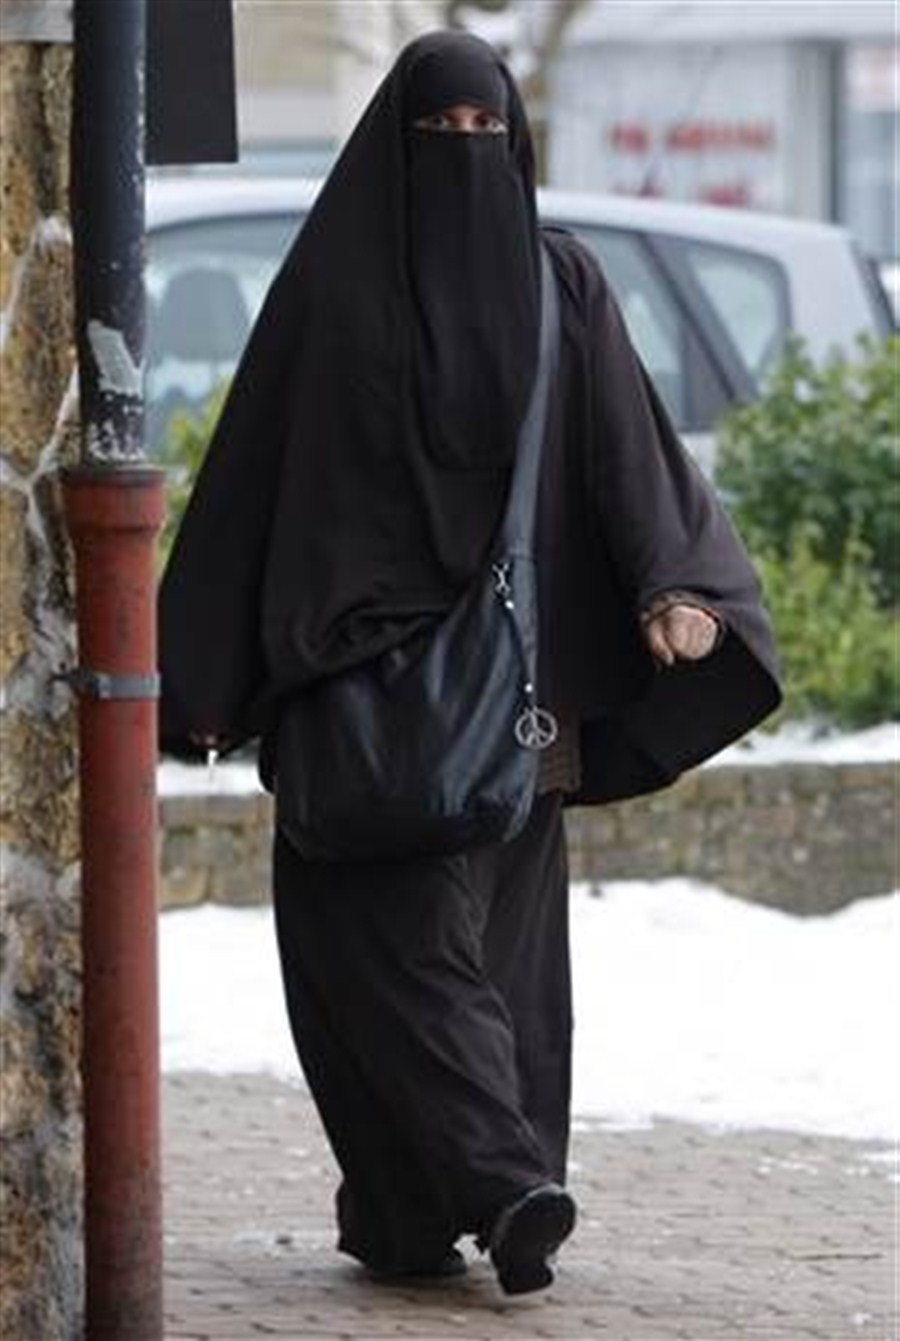 french hijab ban French burqa and niqab ban march 2017 burqa bans, headscarves and veils: french burkini ban row escalates after clothing incident at nice beach published.